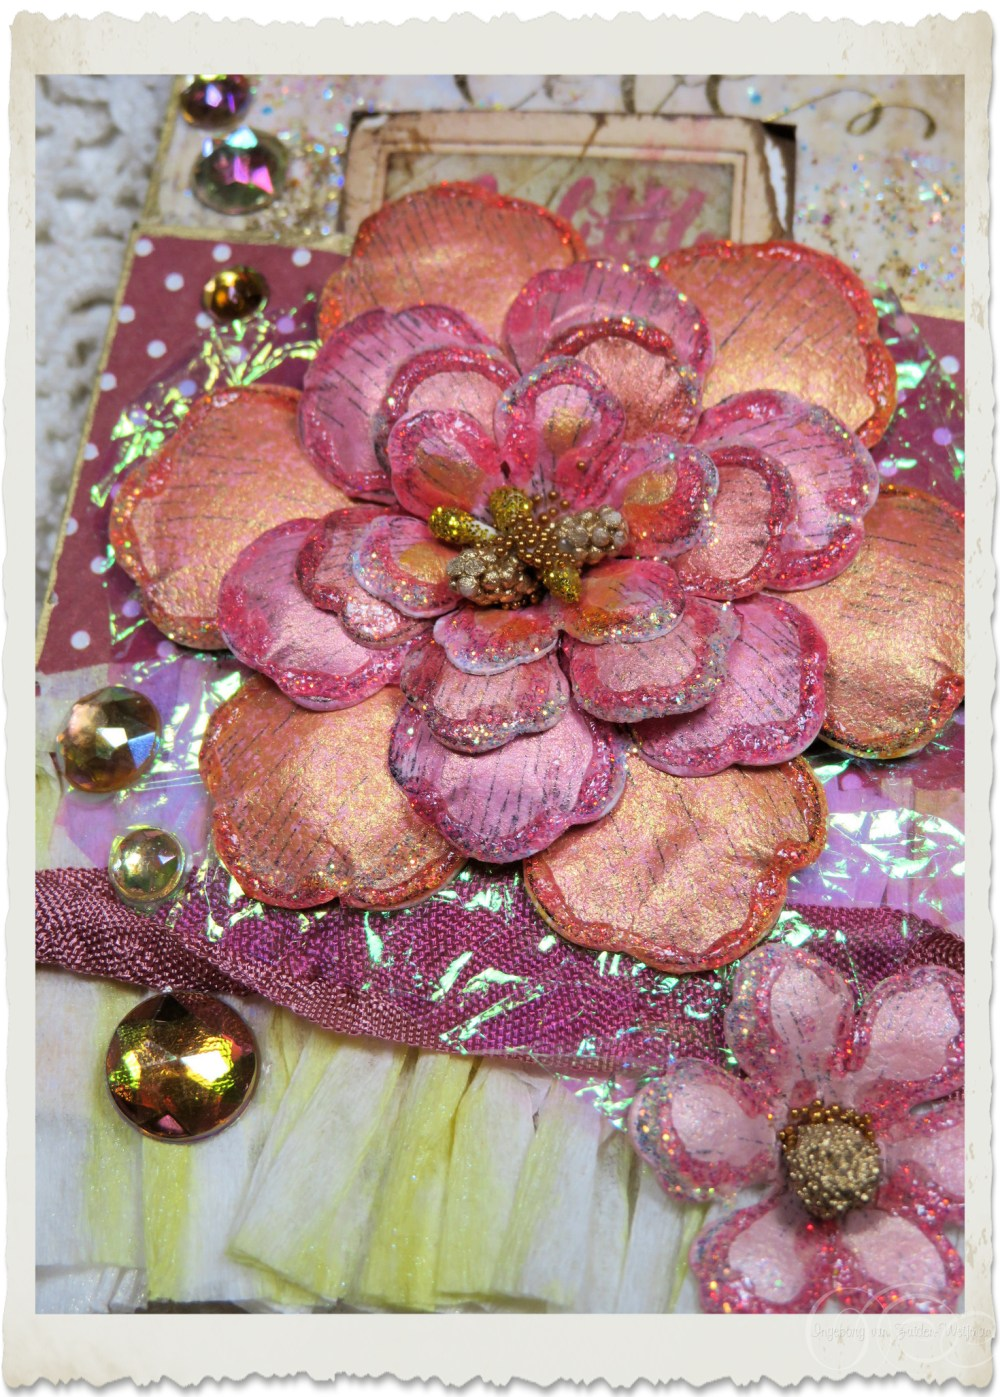 Handmade glitter flower with golden accents on iridescent paper